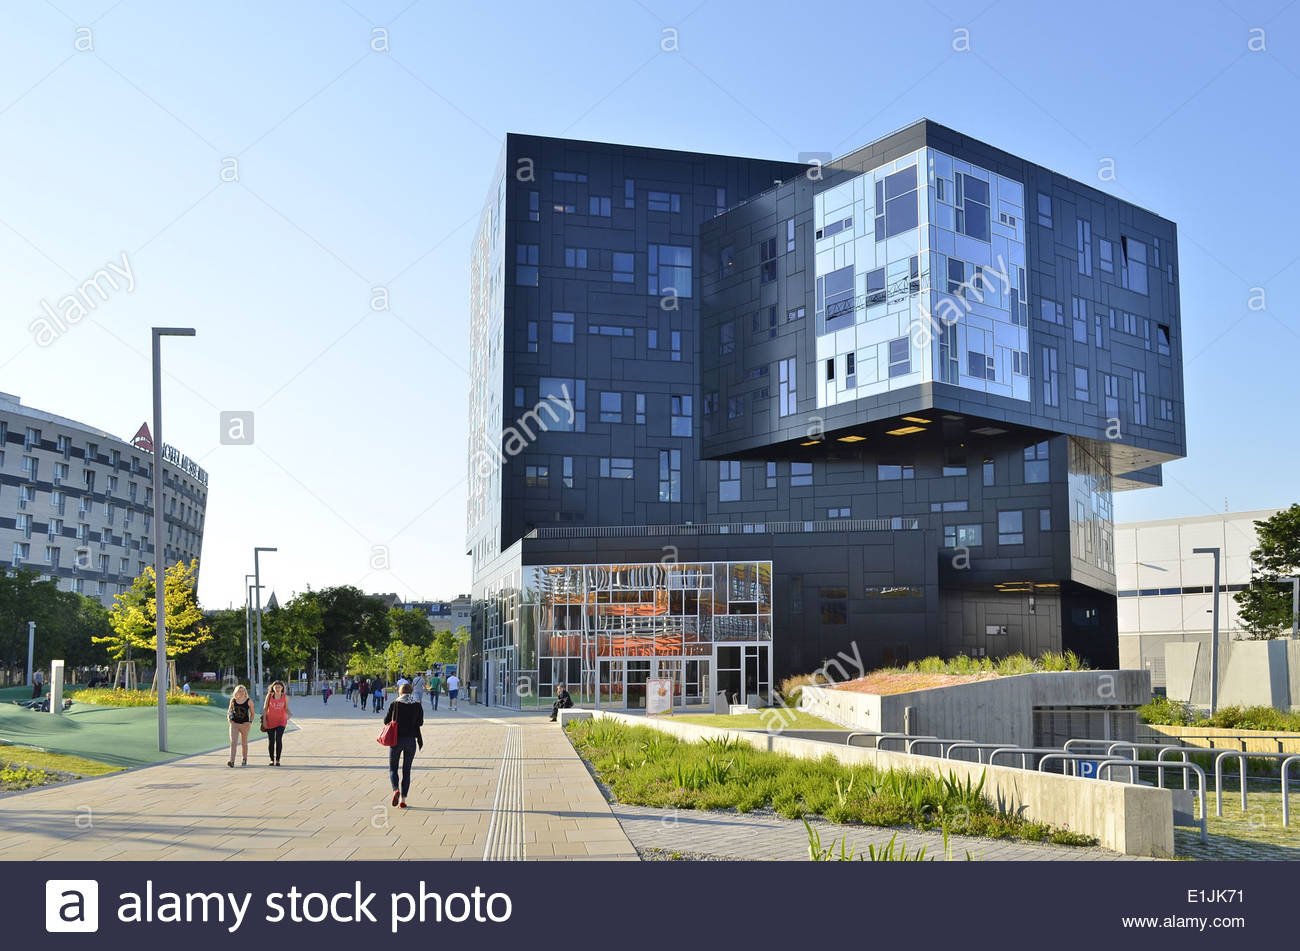 Vienna Austria University of Economics and Business - Executive Academy building by Madrid's NO.MAD Arquitectos. - Stock Image